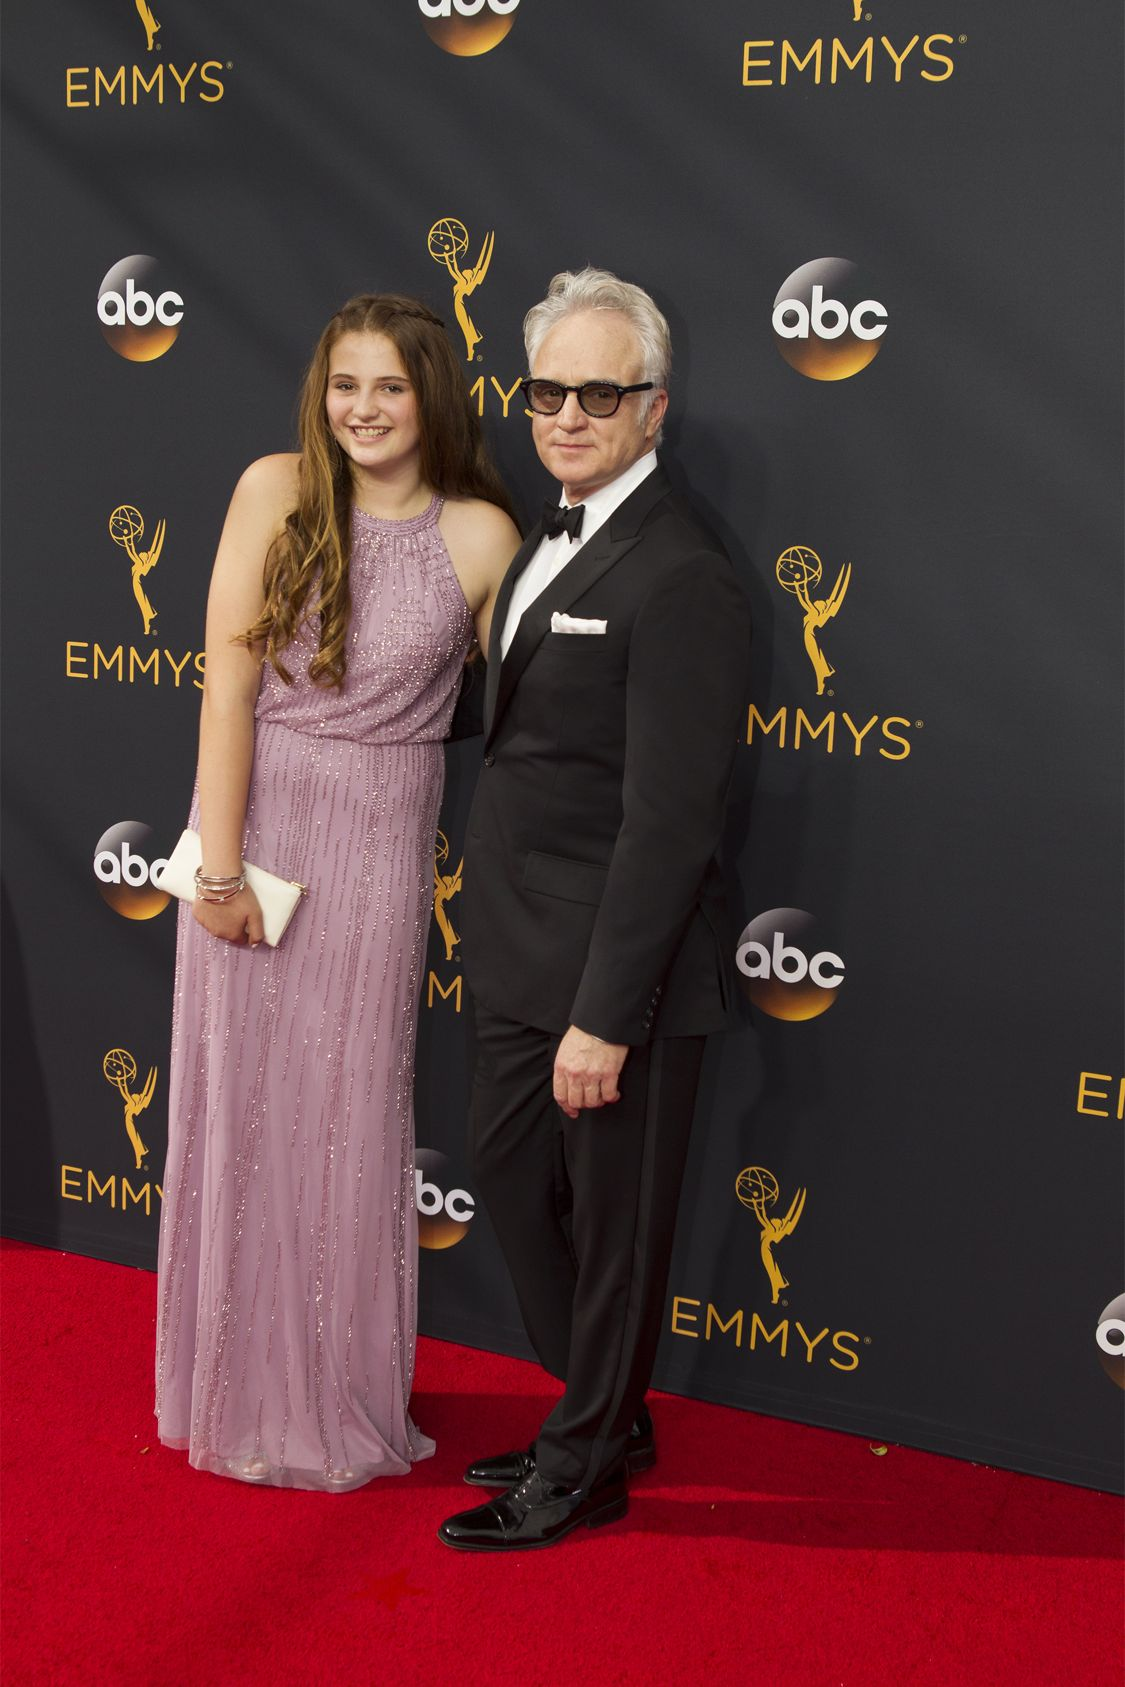 """THE 68TH EMMY(r) AWARDS - """"The 68th Emmy Awards"""" broadcasts live from The Microsoft Theater in Los Angeles, Sunday, September 18 (7:00-11:00 p.m. EDT/4:00-8:00 p.m. PDT), on ABC and is hosted by Jimmy Kimmel. (ABC/Rick Rowell) BRADLEY WHITFORD"""